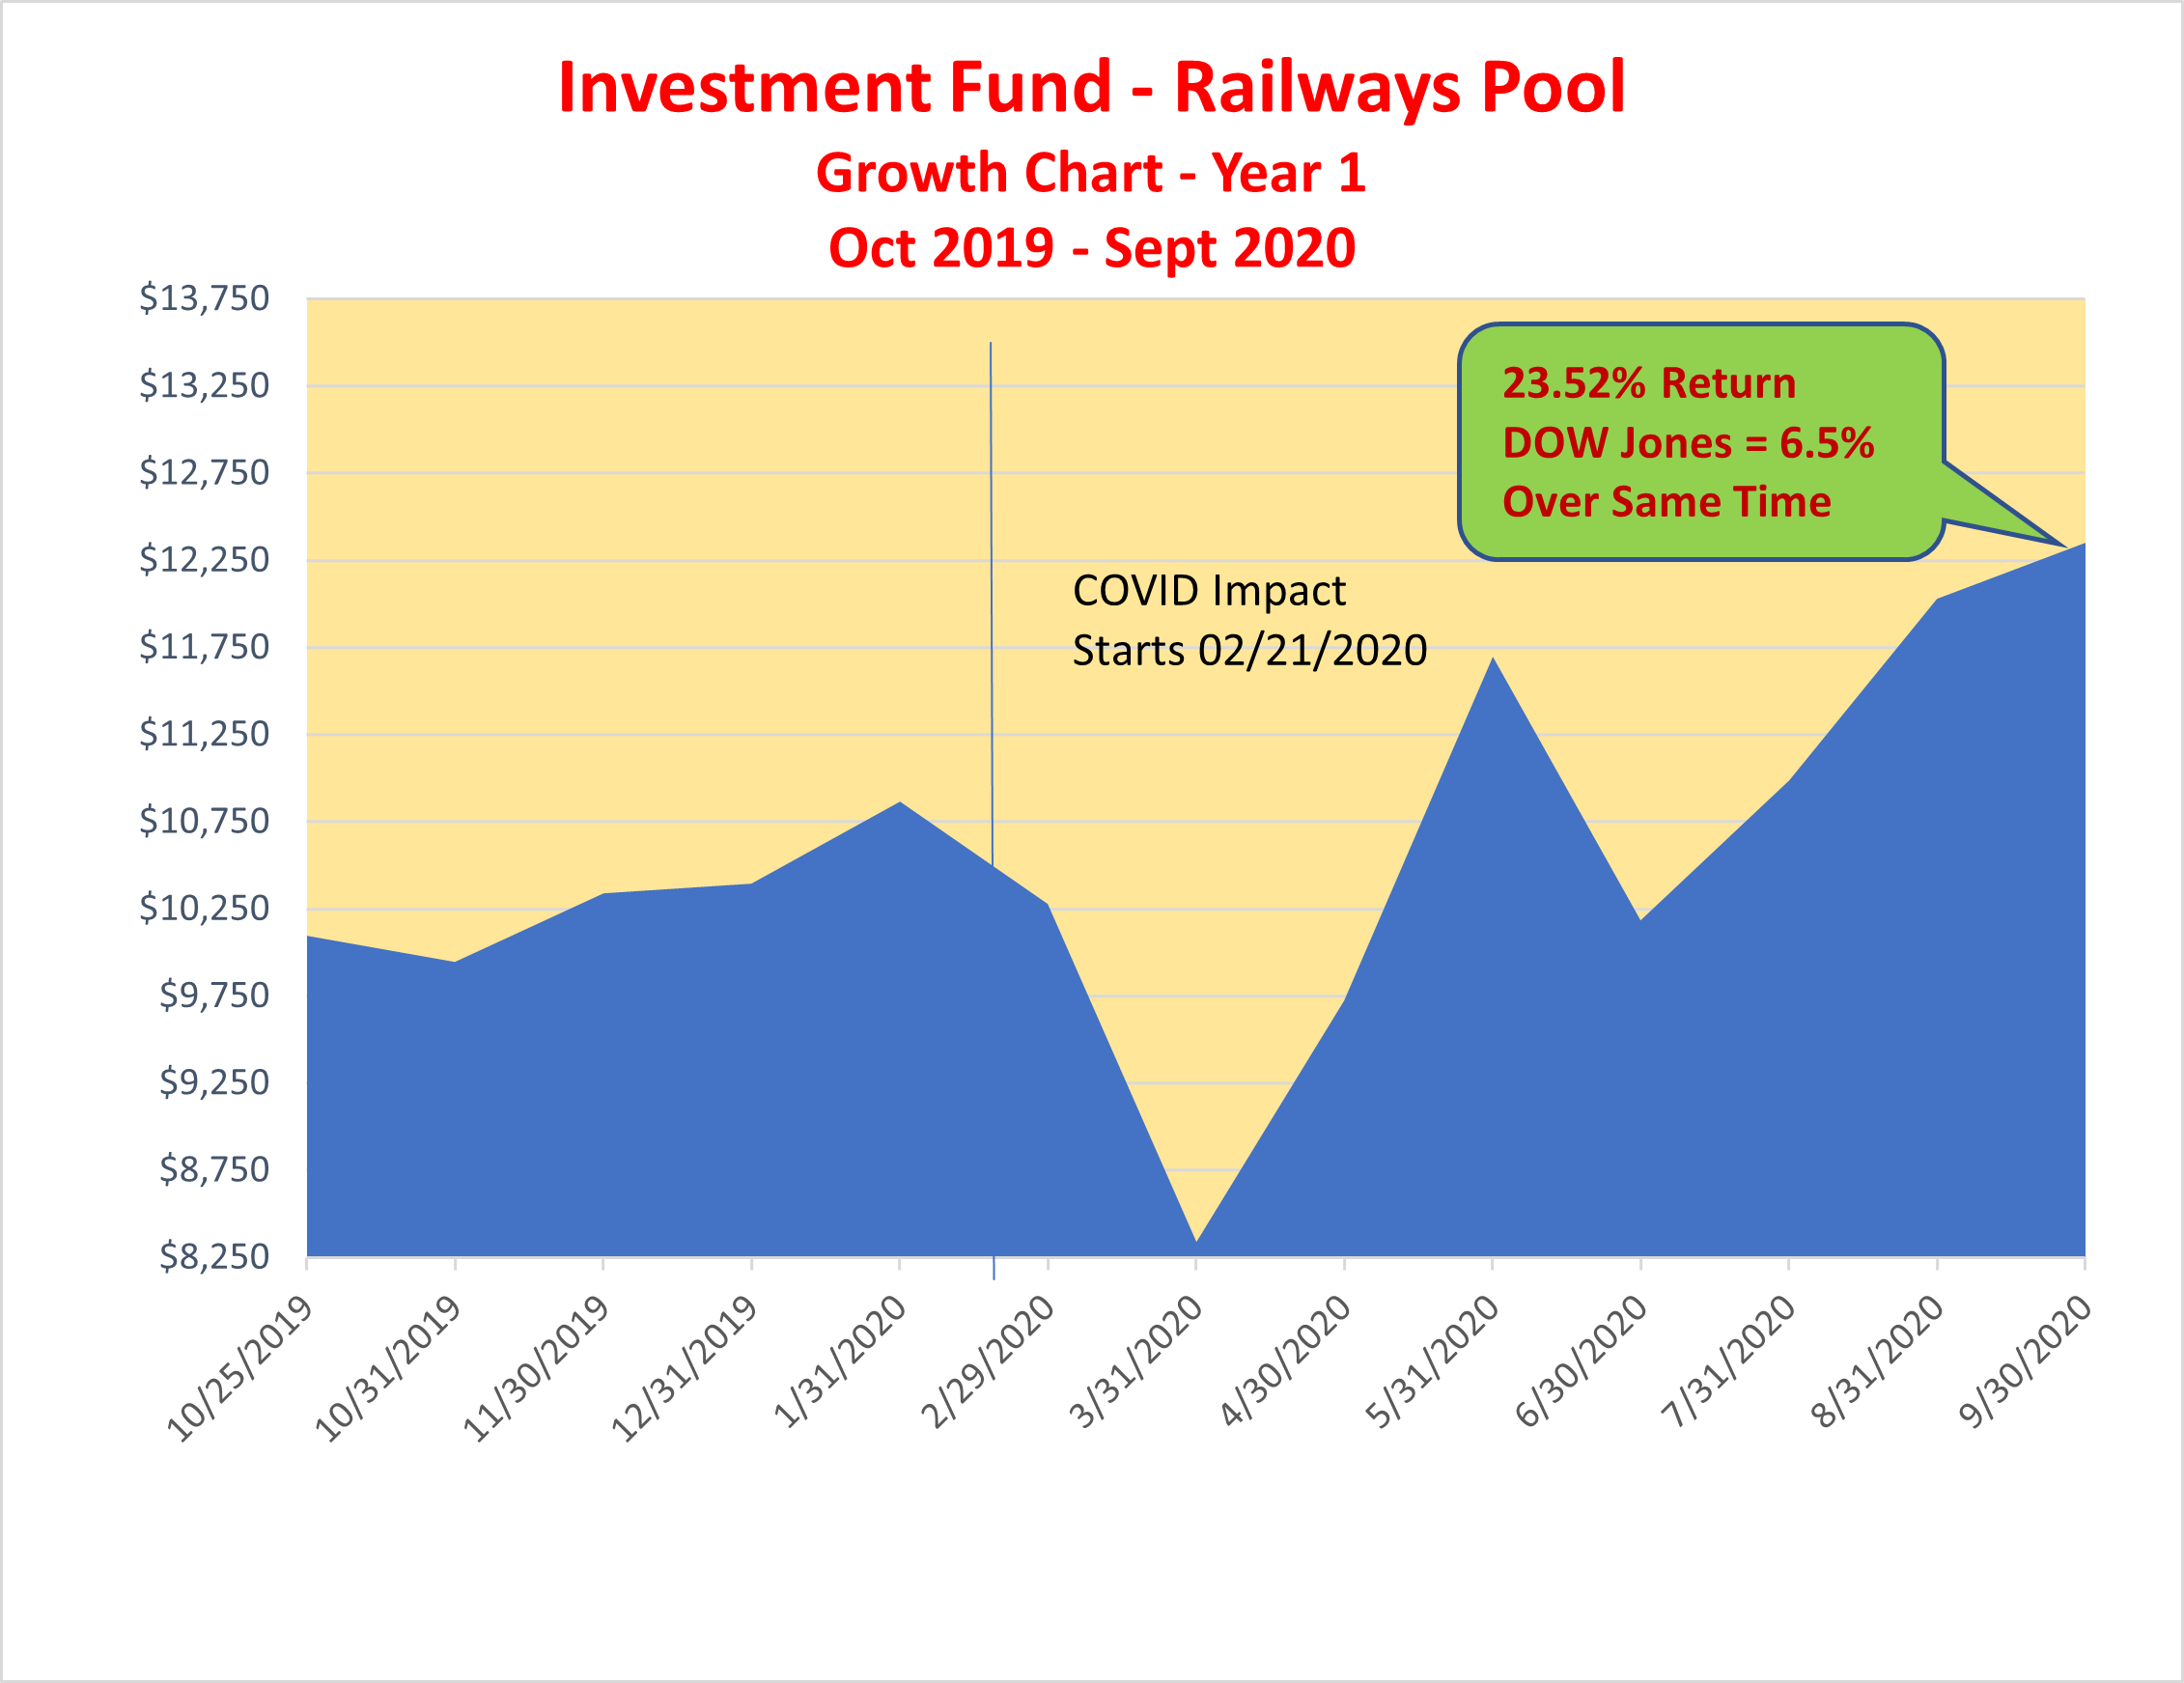 Railways Pool